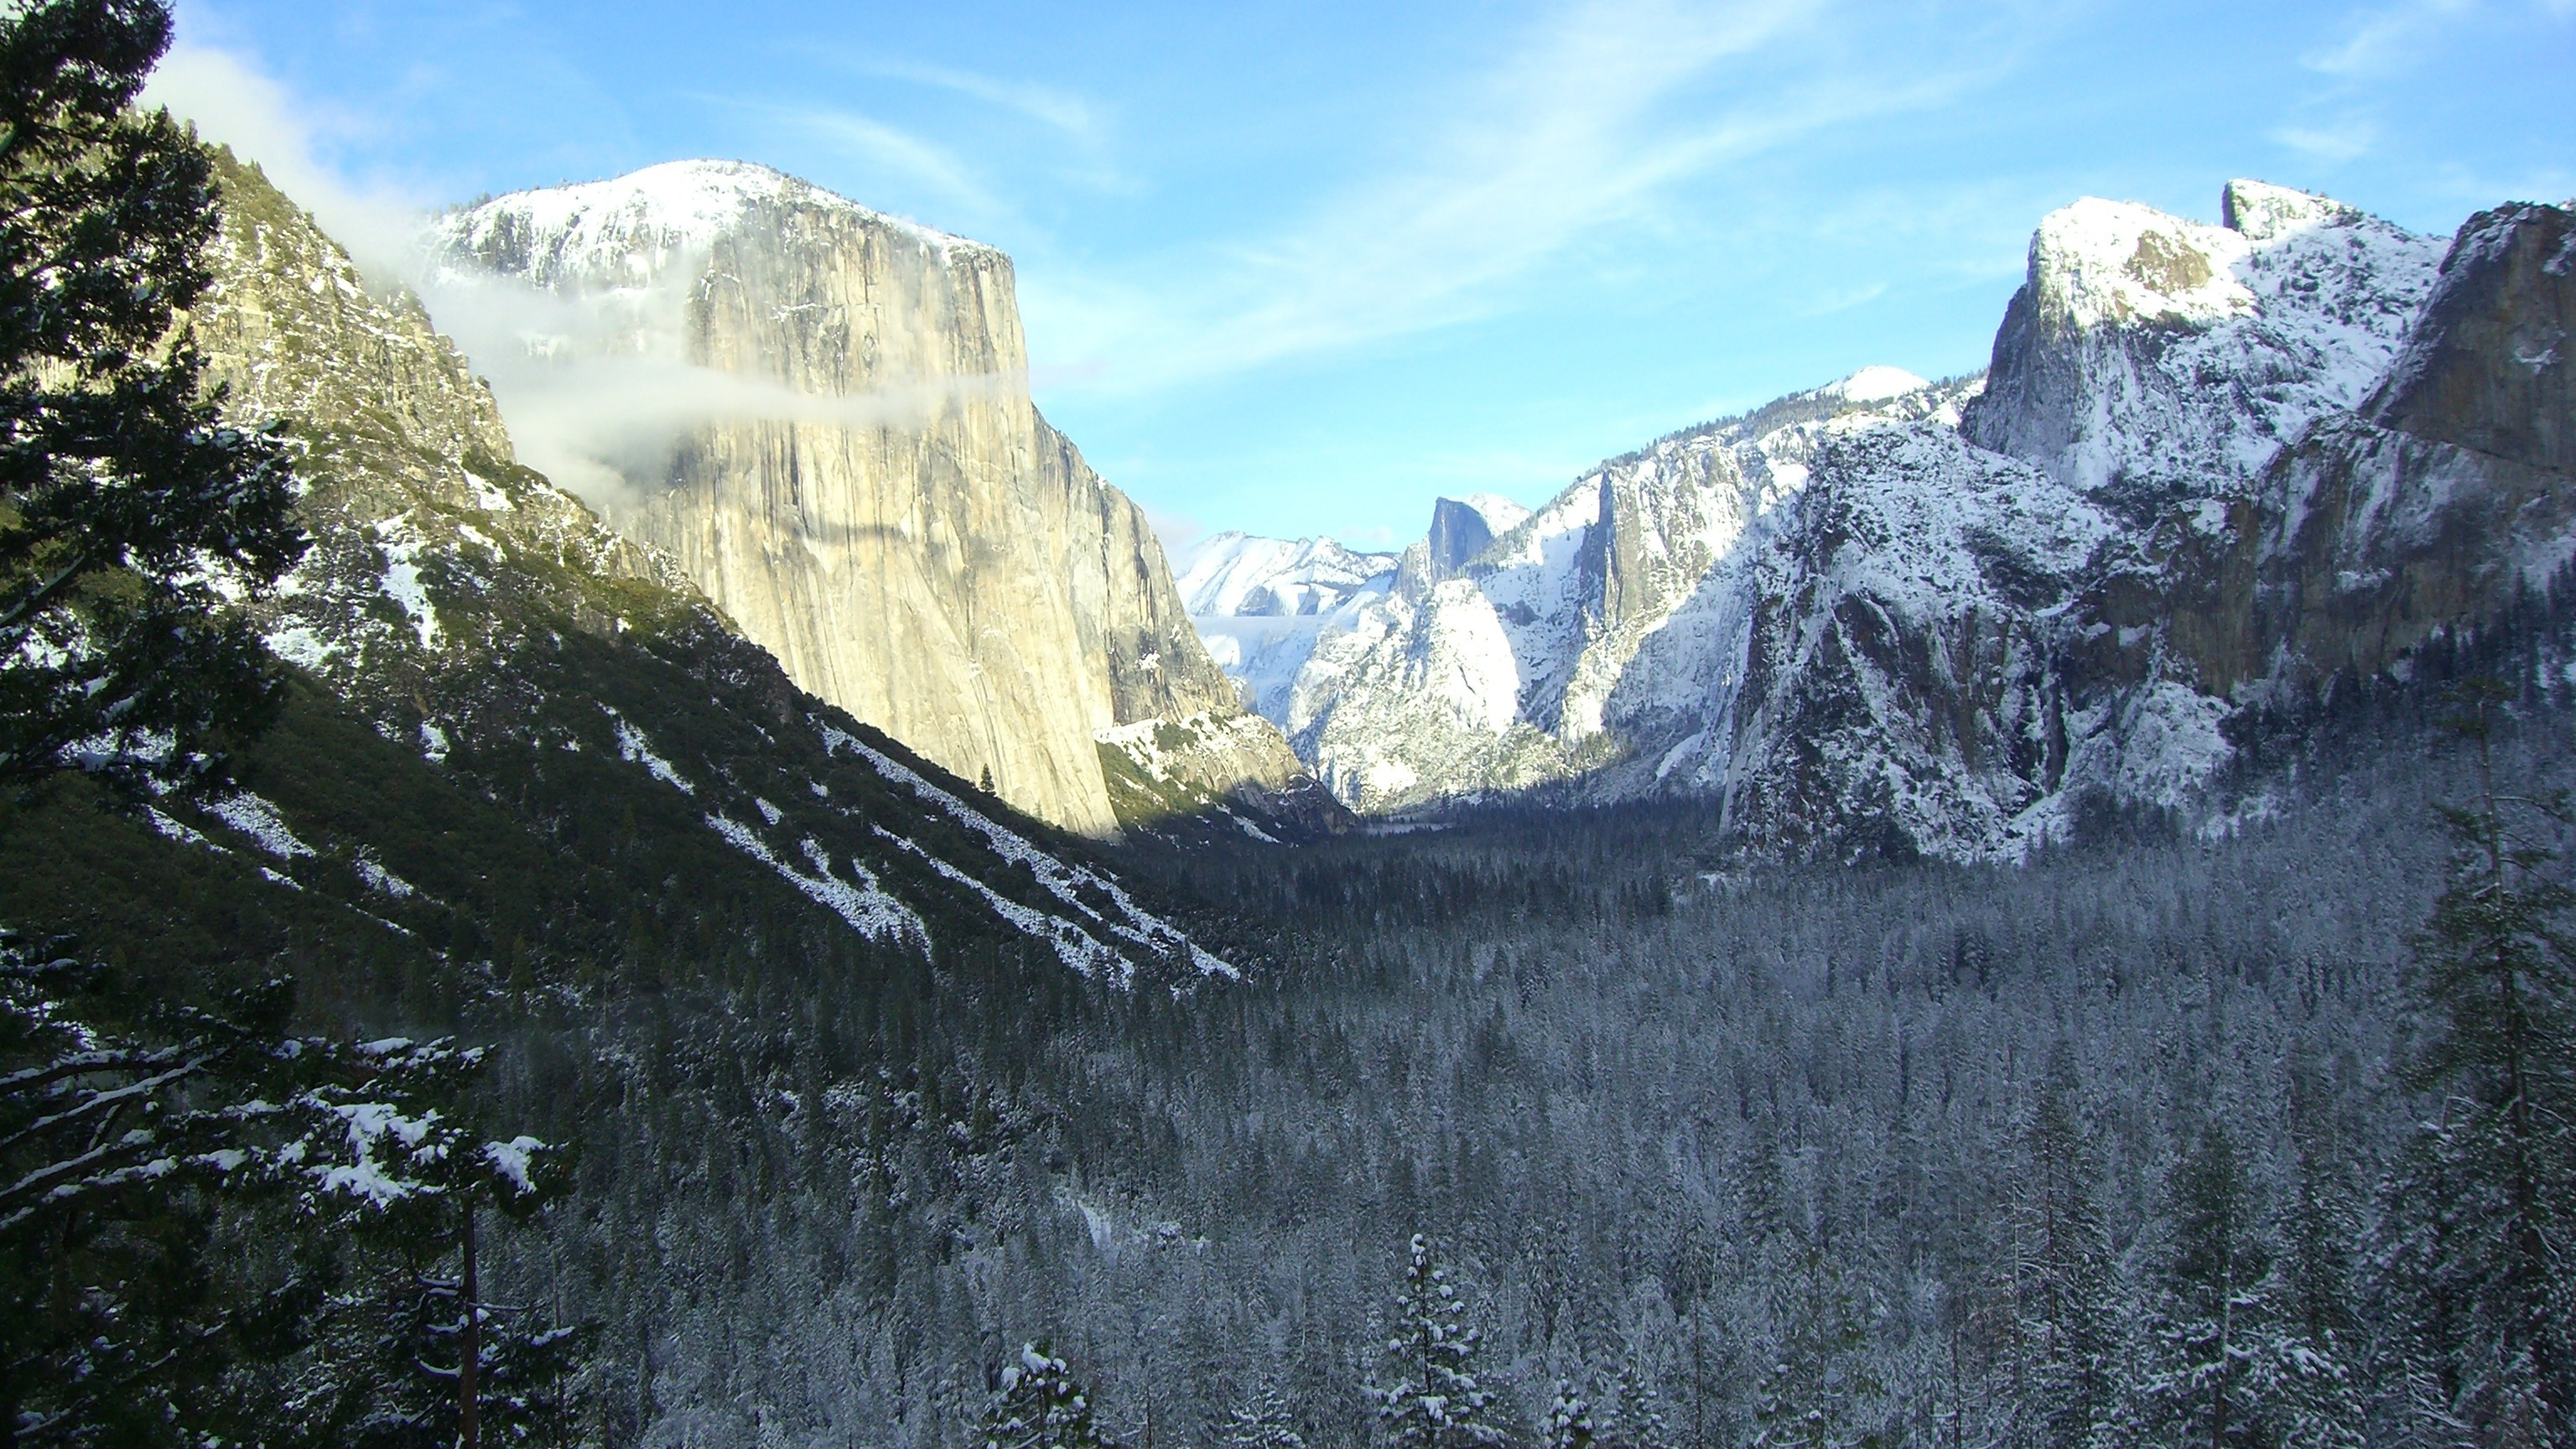 3072x1728 El Capitan wallpaper ·① Download free cool backgrounds for .